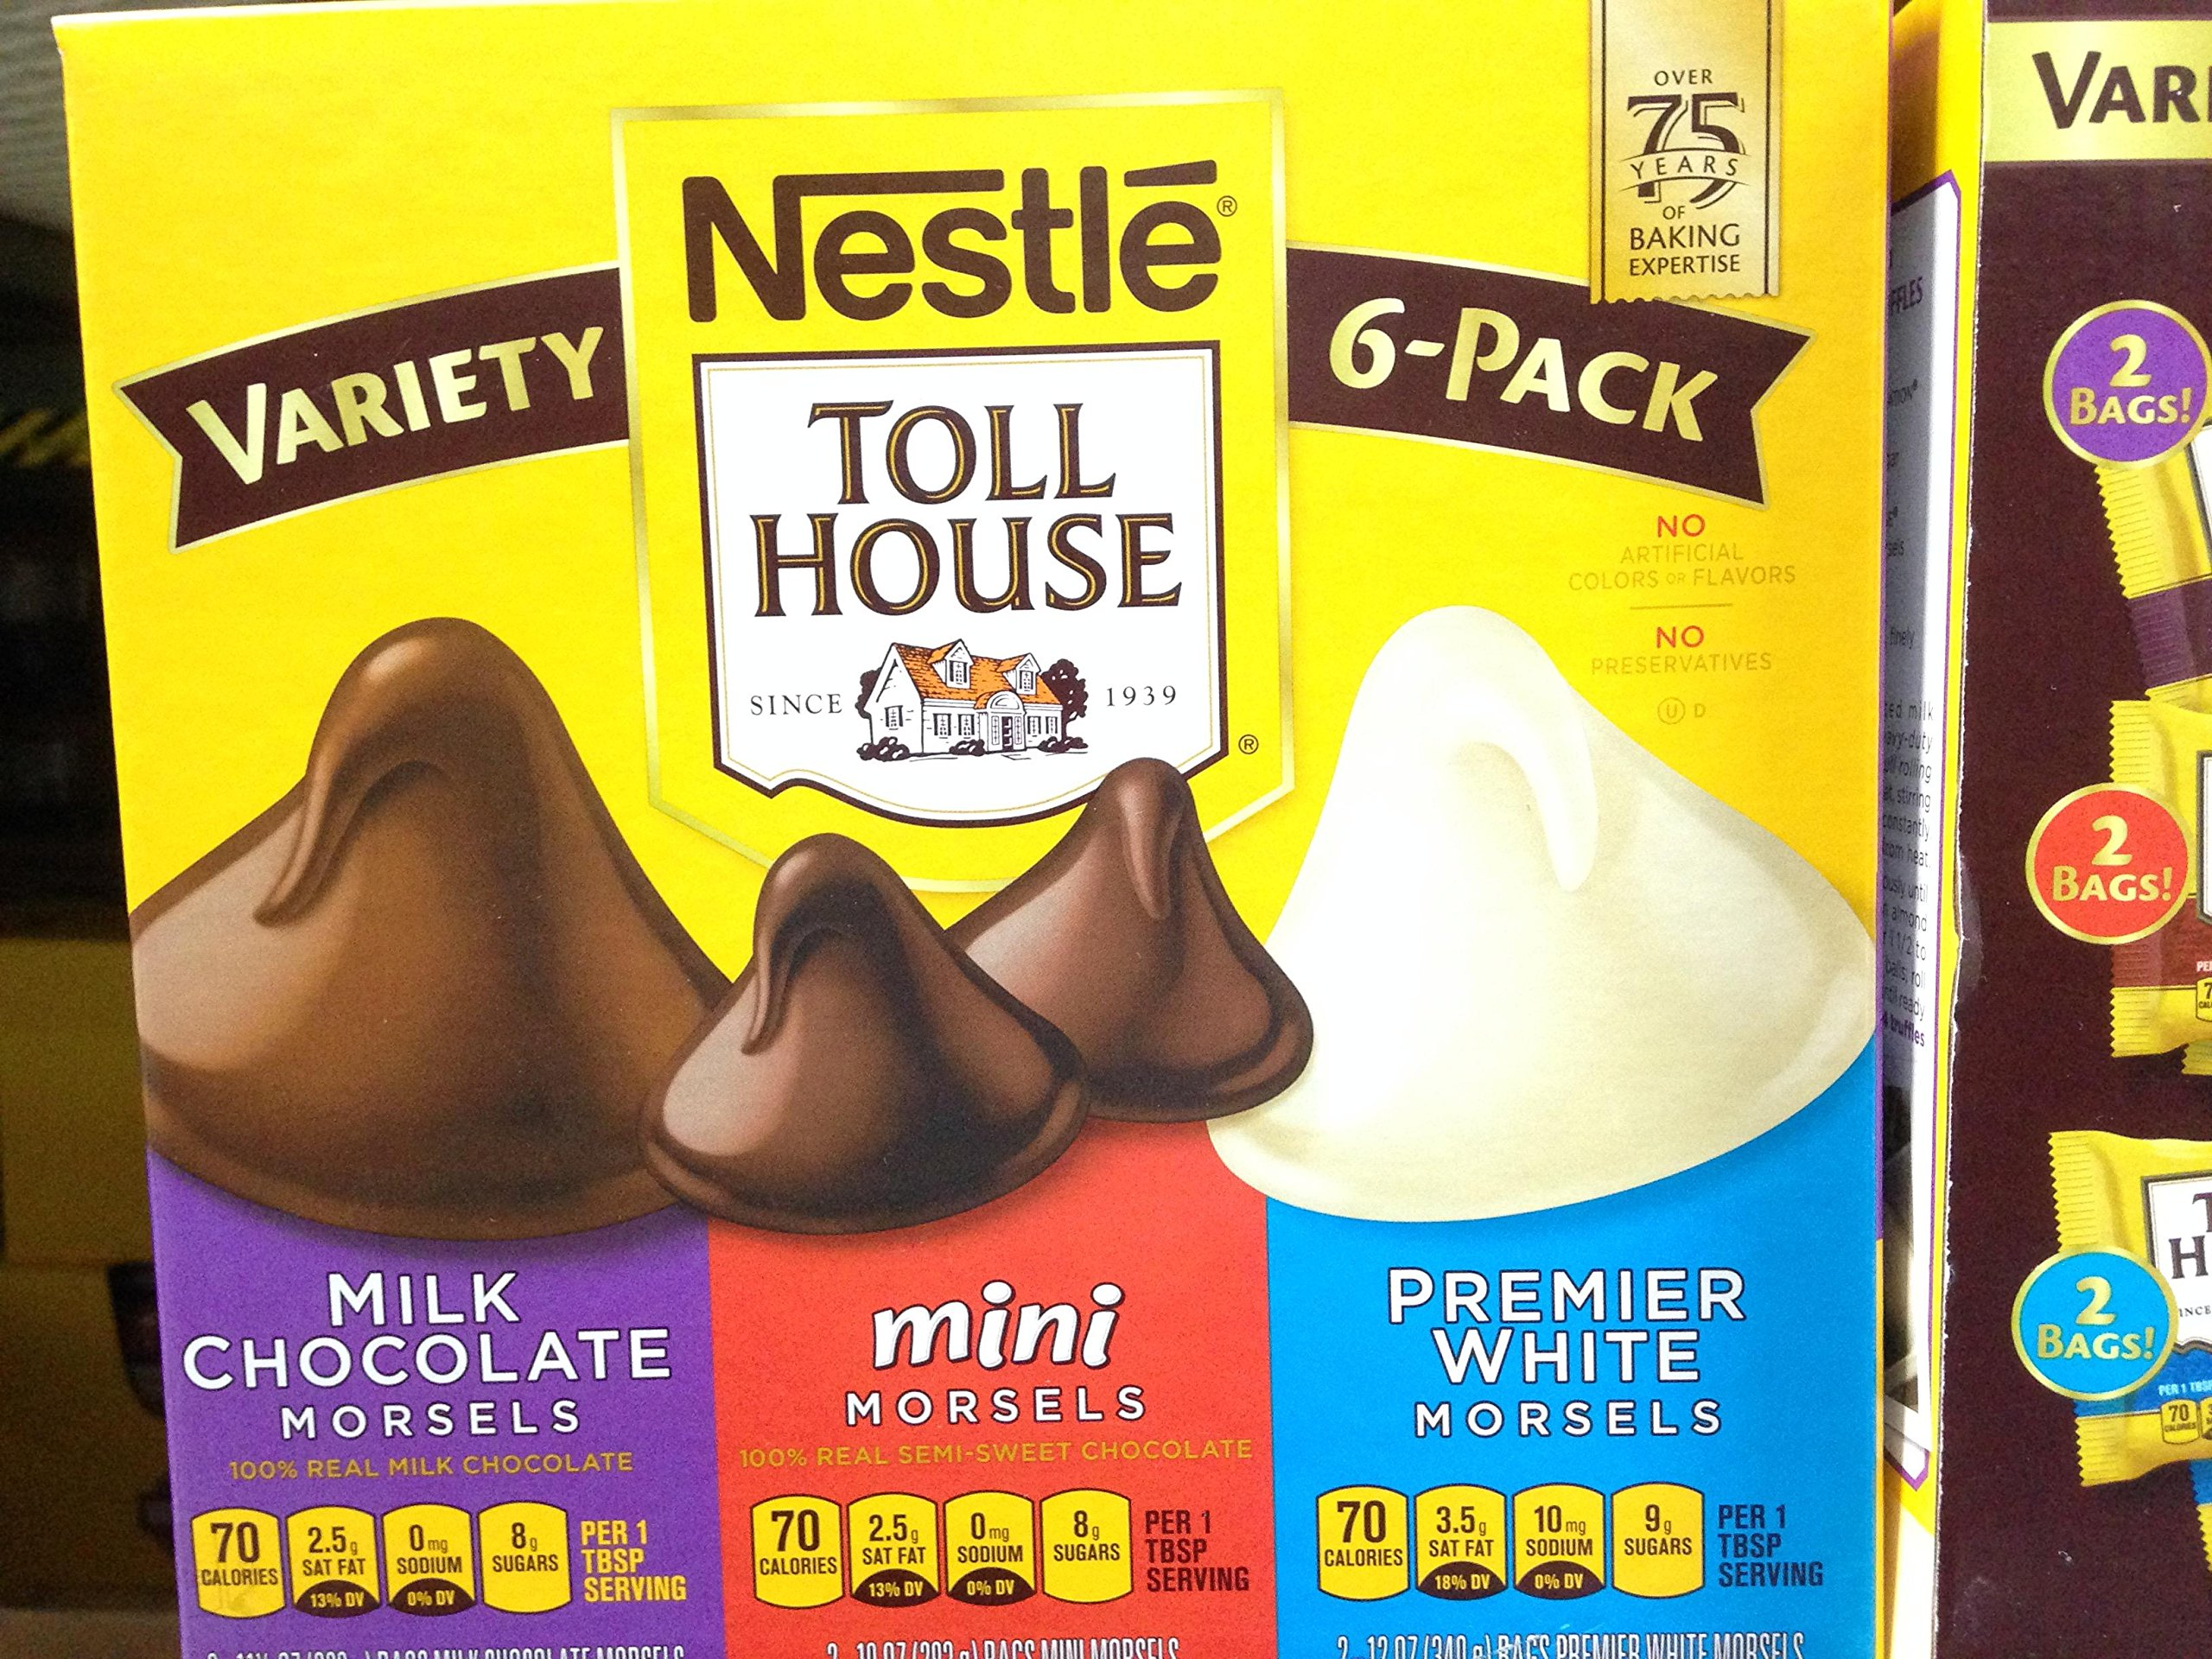 Tollhouse morsels variety box 67 oz (pack of 6)